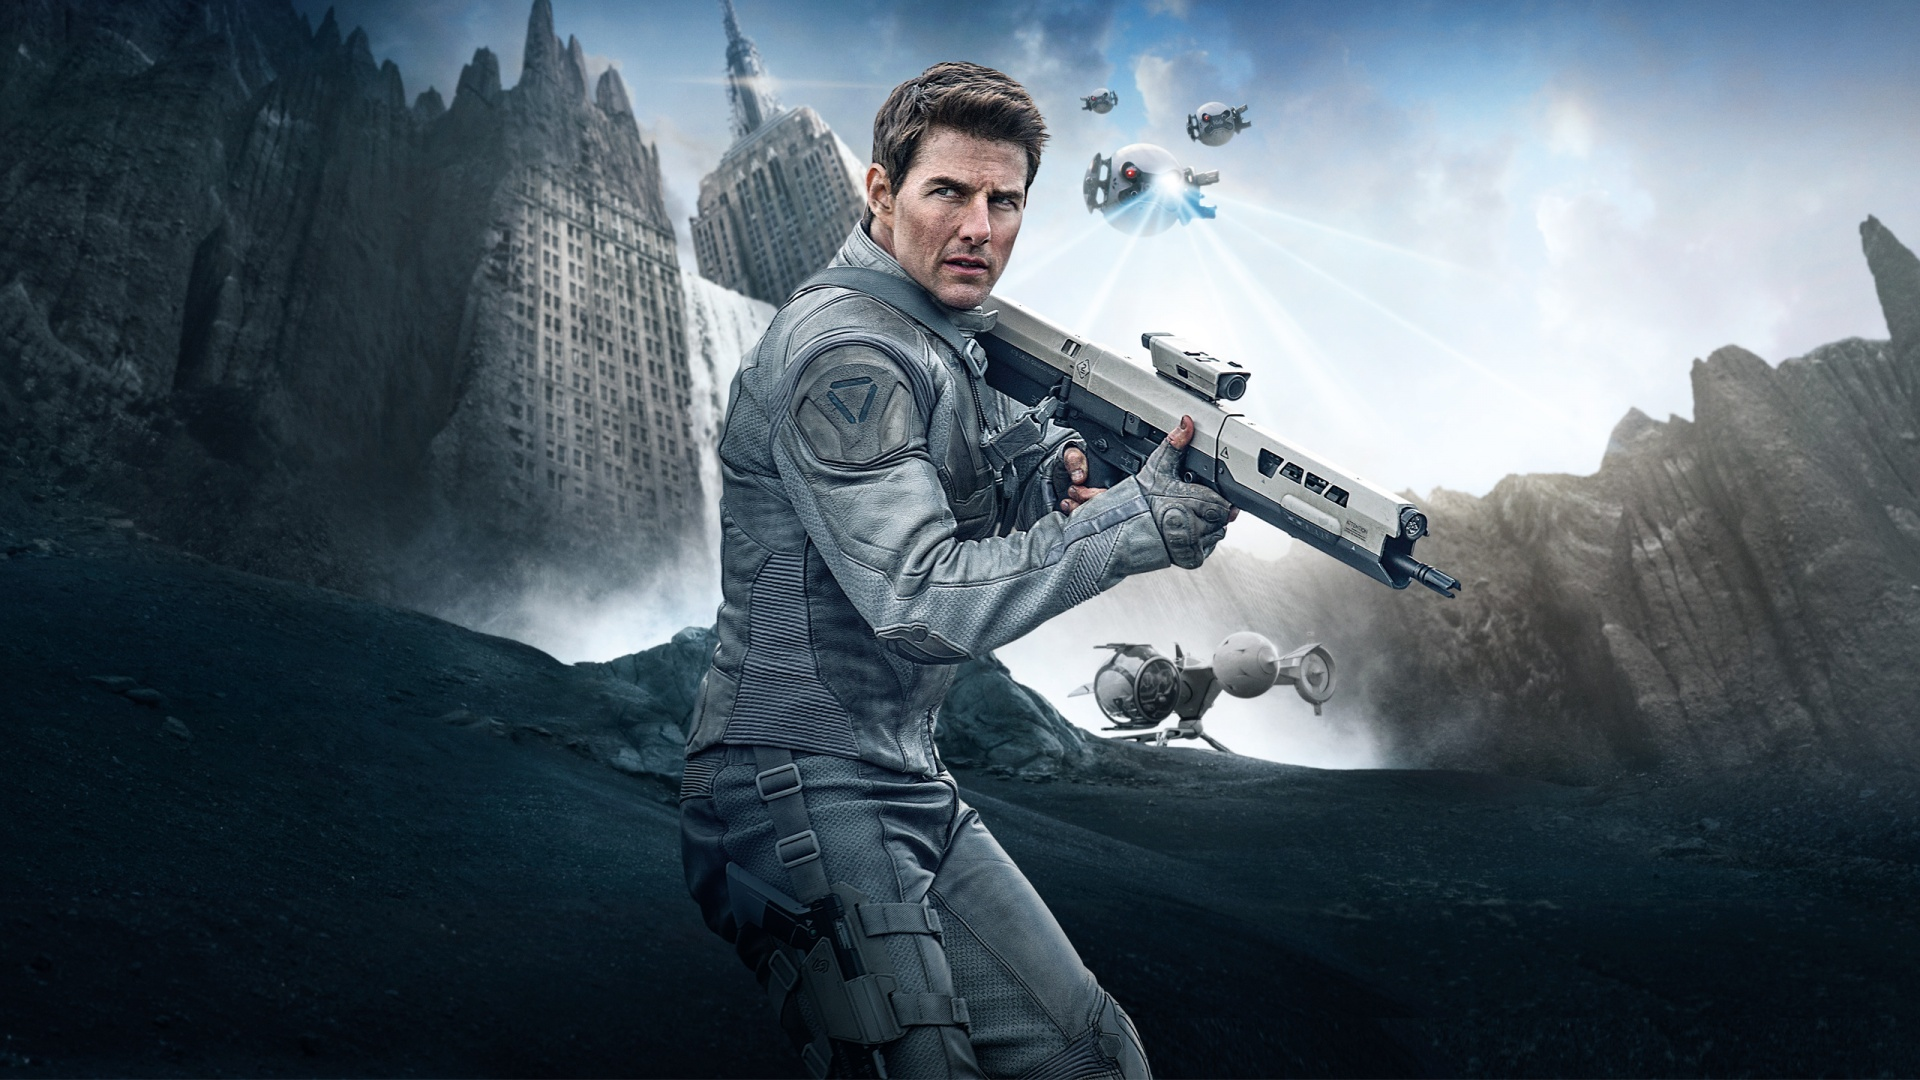 Tom Cruise in Oblivion Wallpapers in jpg format for download 1920x1080